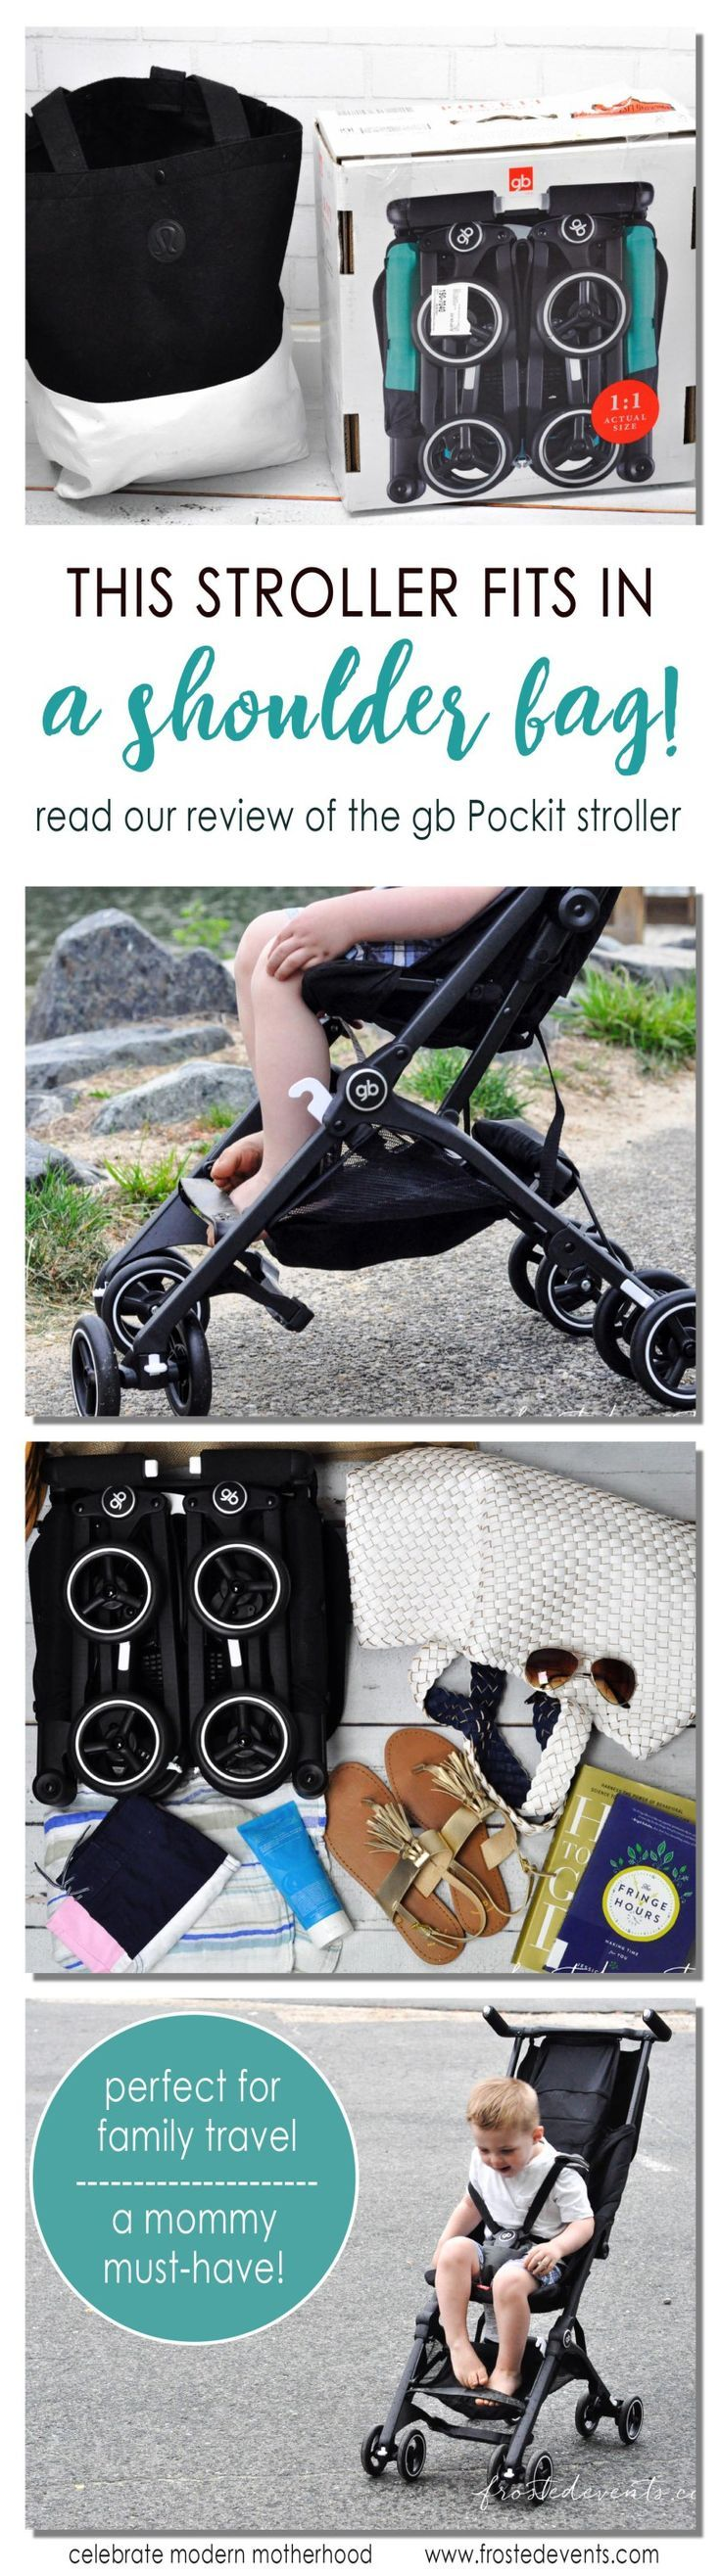 A Stroller That Fits In Your Bag! The gb Pockit Stroller is